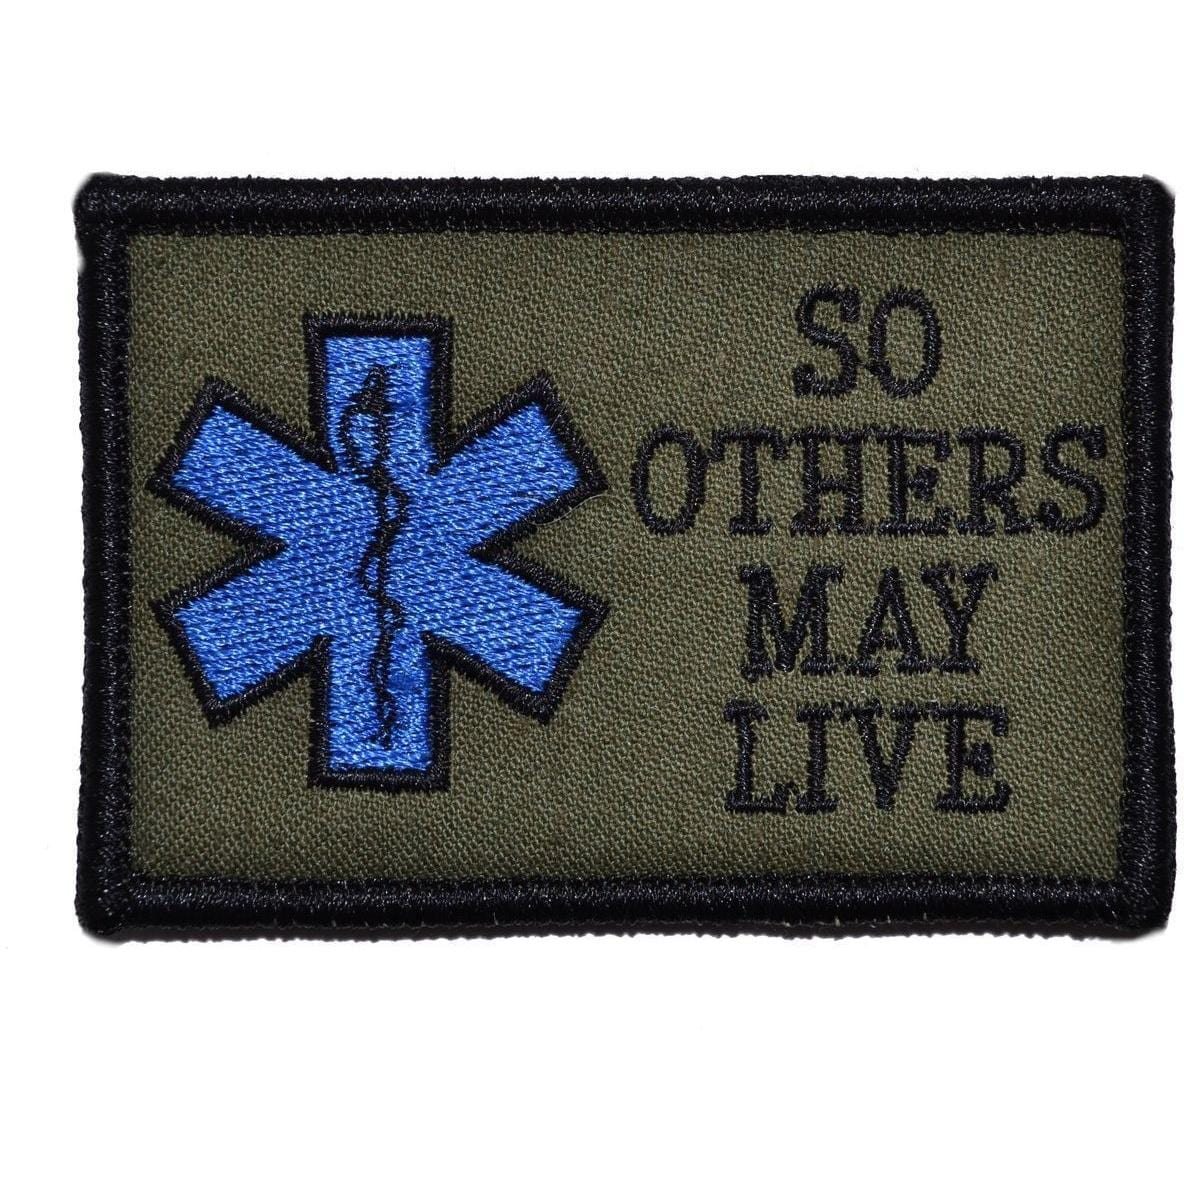 Tactical Gear Junkie Patches Olive Drab EMS So Others May Live - 2x3 Patch